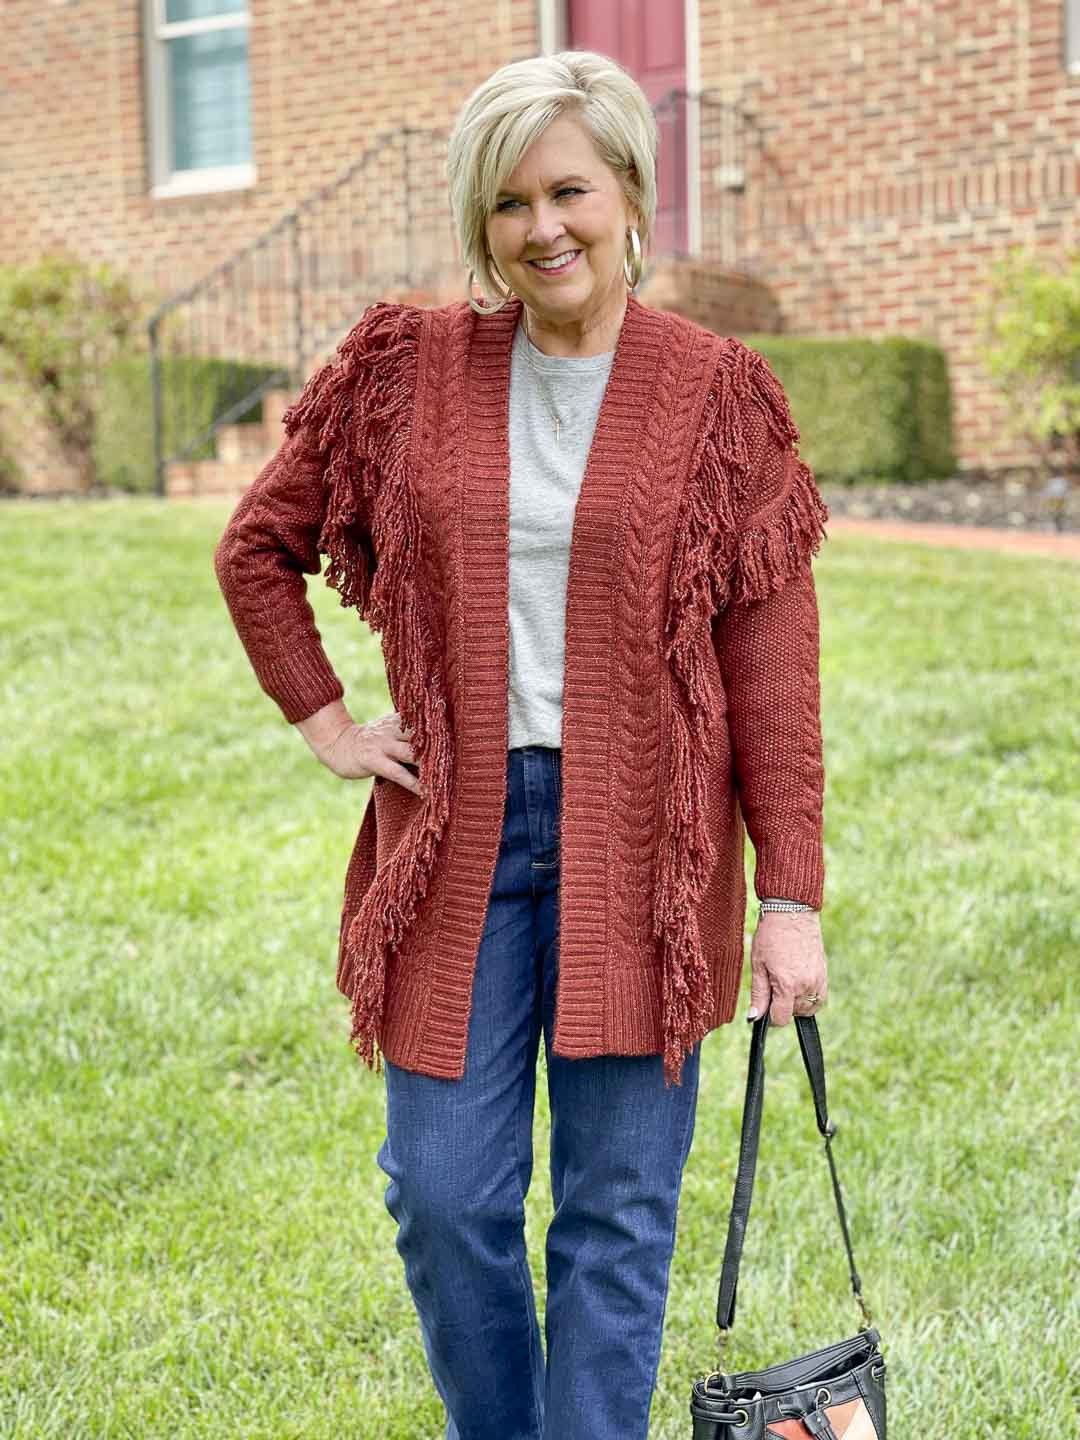 Over 40 Fashion Blogger, Tania Stephens, is showing her recent Walmart haul including this oversized fringed cardigan with a gray tee